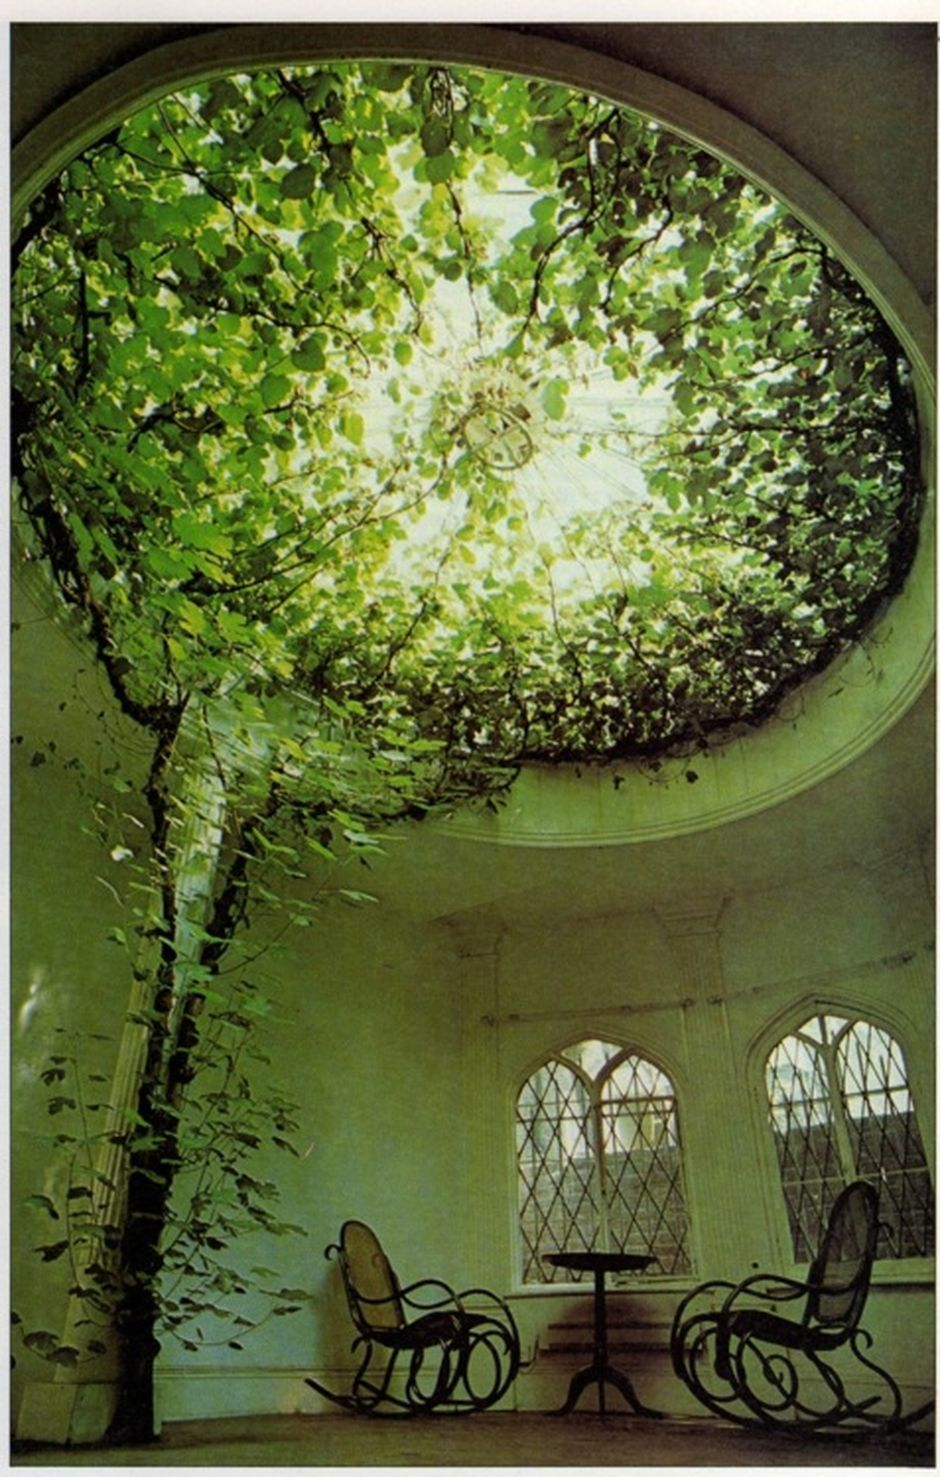 Marvelous Indoor Vines And Climbing Plants Decorations 51 Hoommy Com House Ceiling Design Indoor Vines Backyard Canopy